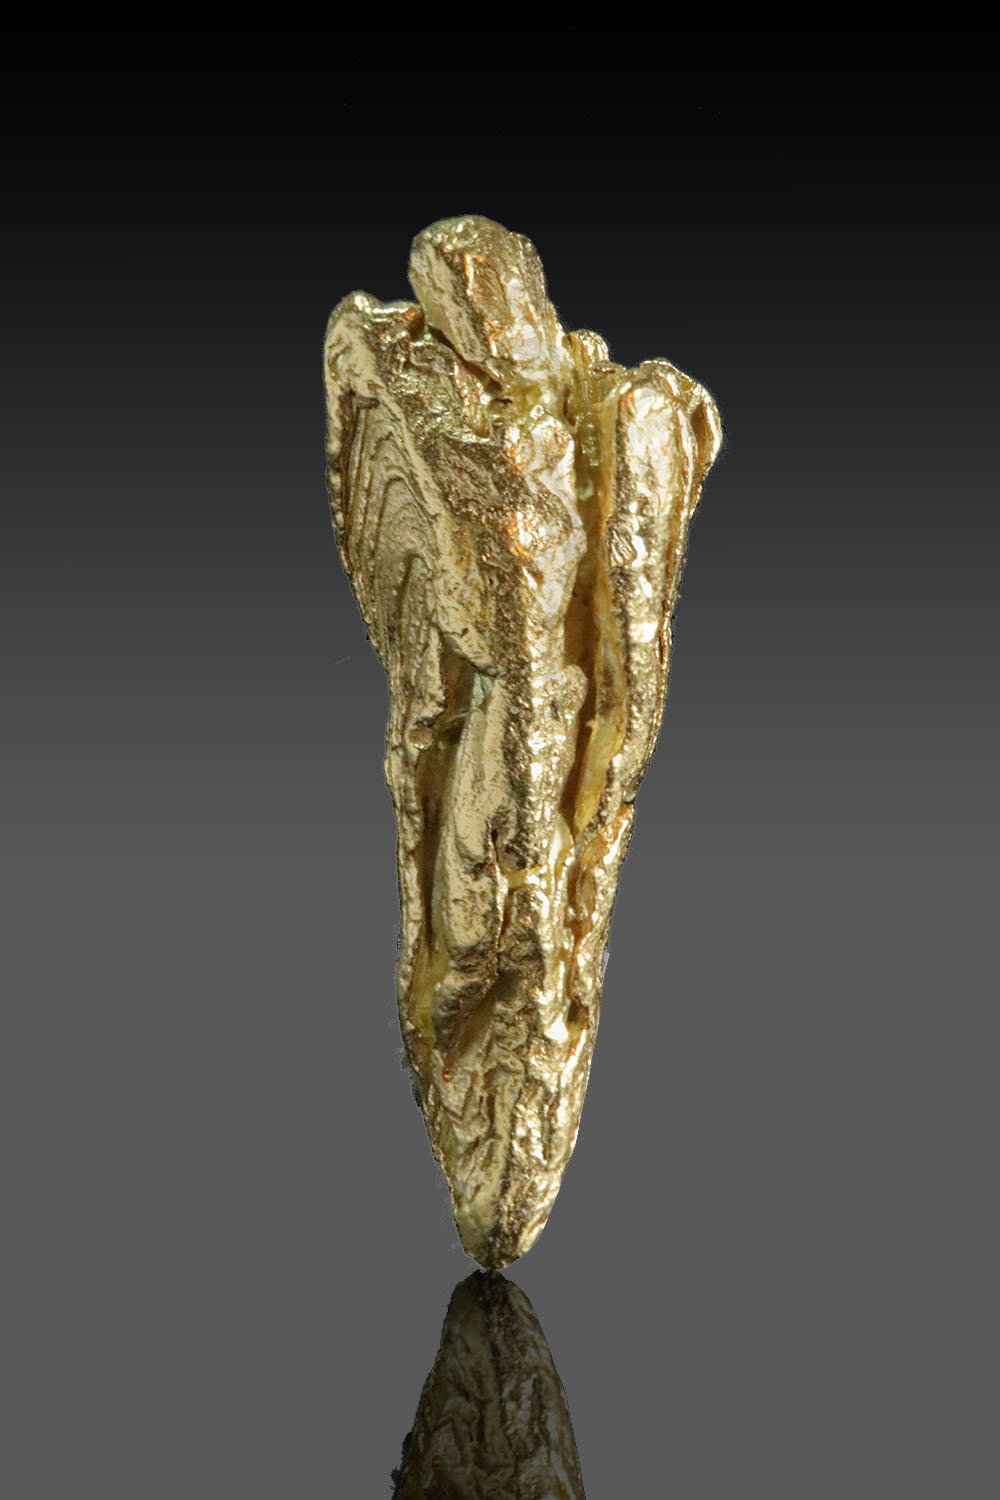 Gold Crystal Pointed Triangle - Striated Yukon Gold Crystal